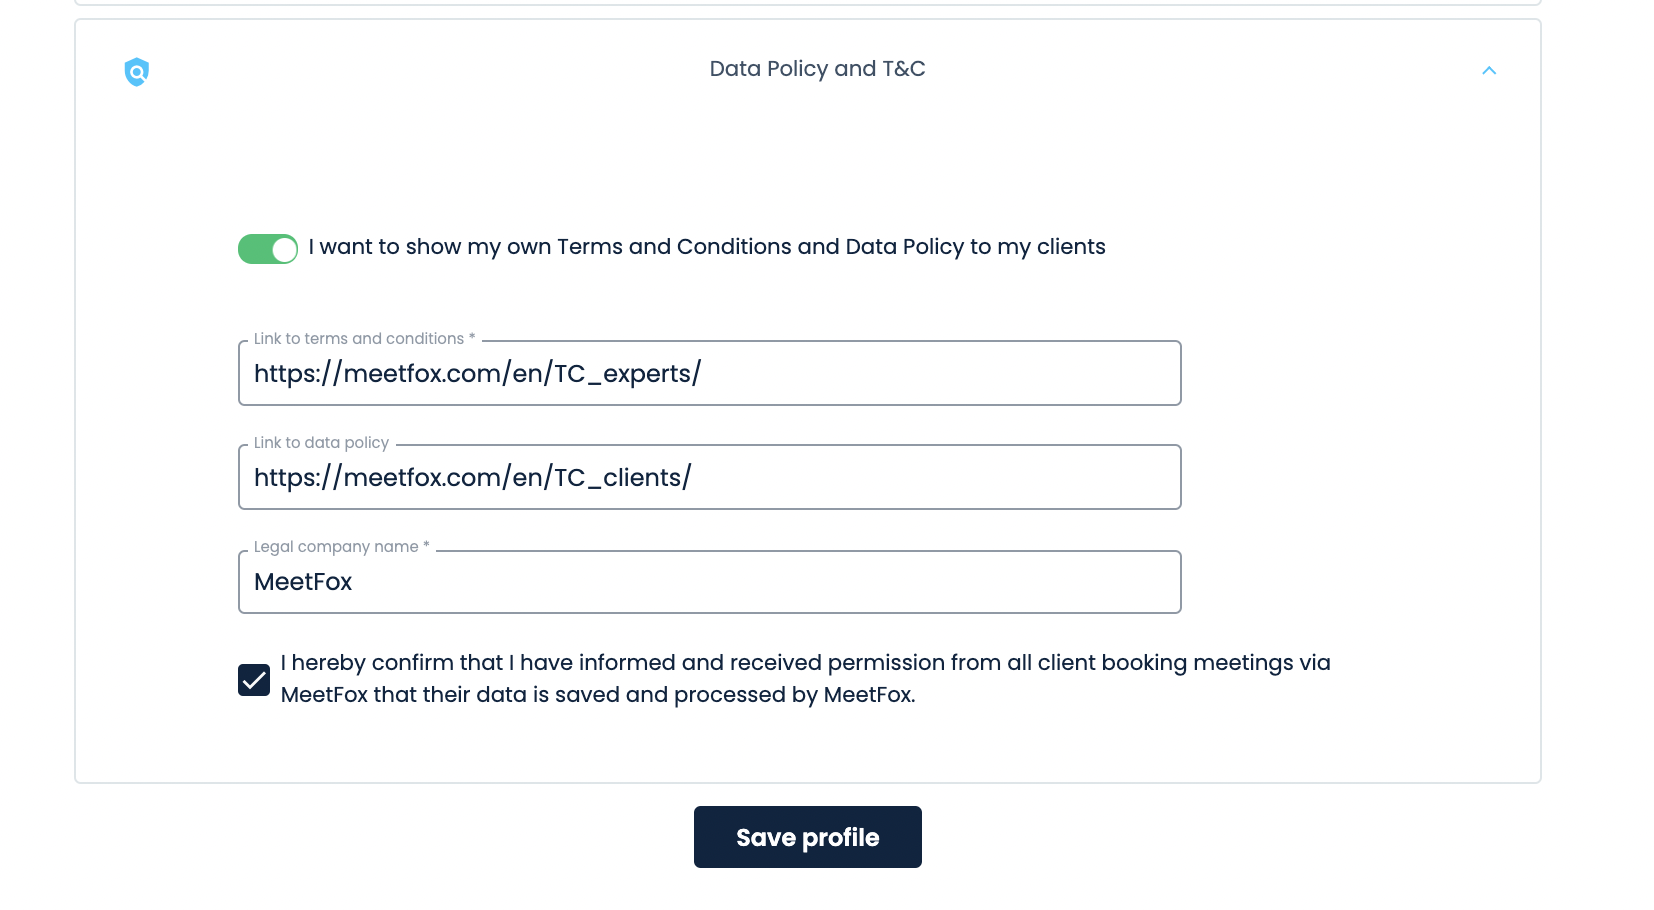 Add data policy and terms and conditions to MeetFox